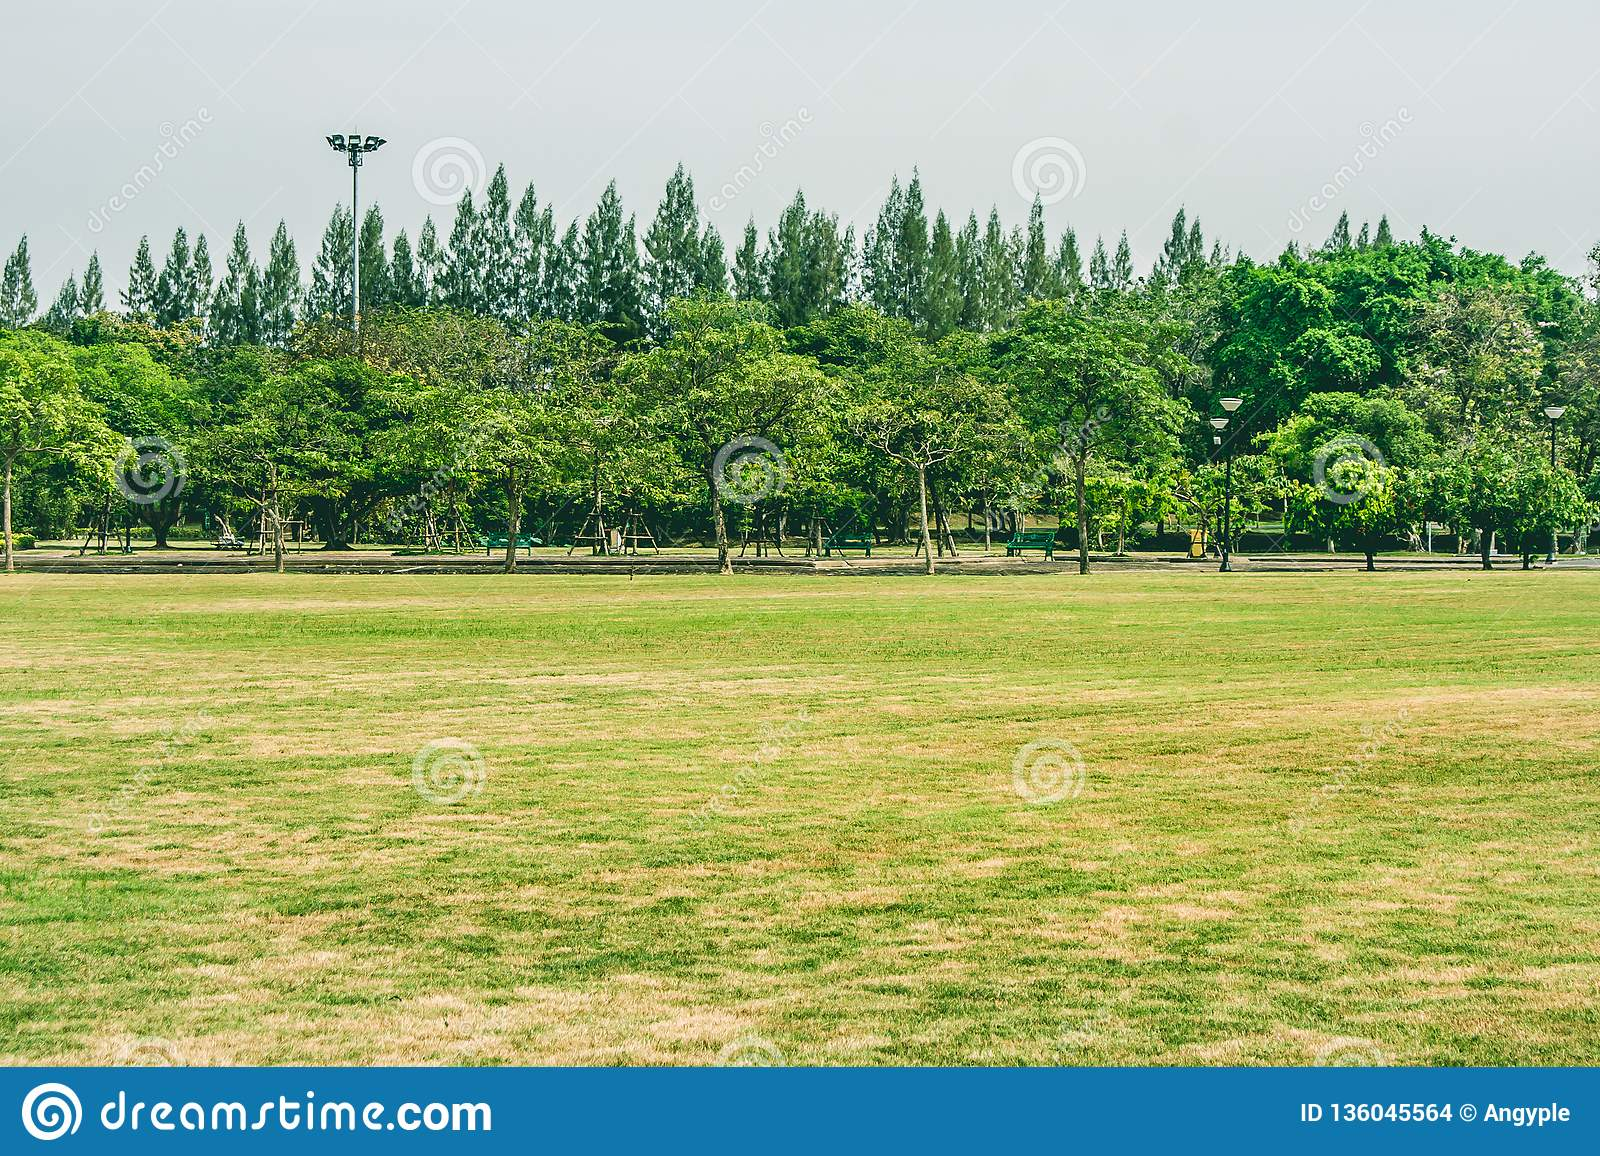 View of green grass meadow field in public park with green trees in the background.